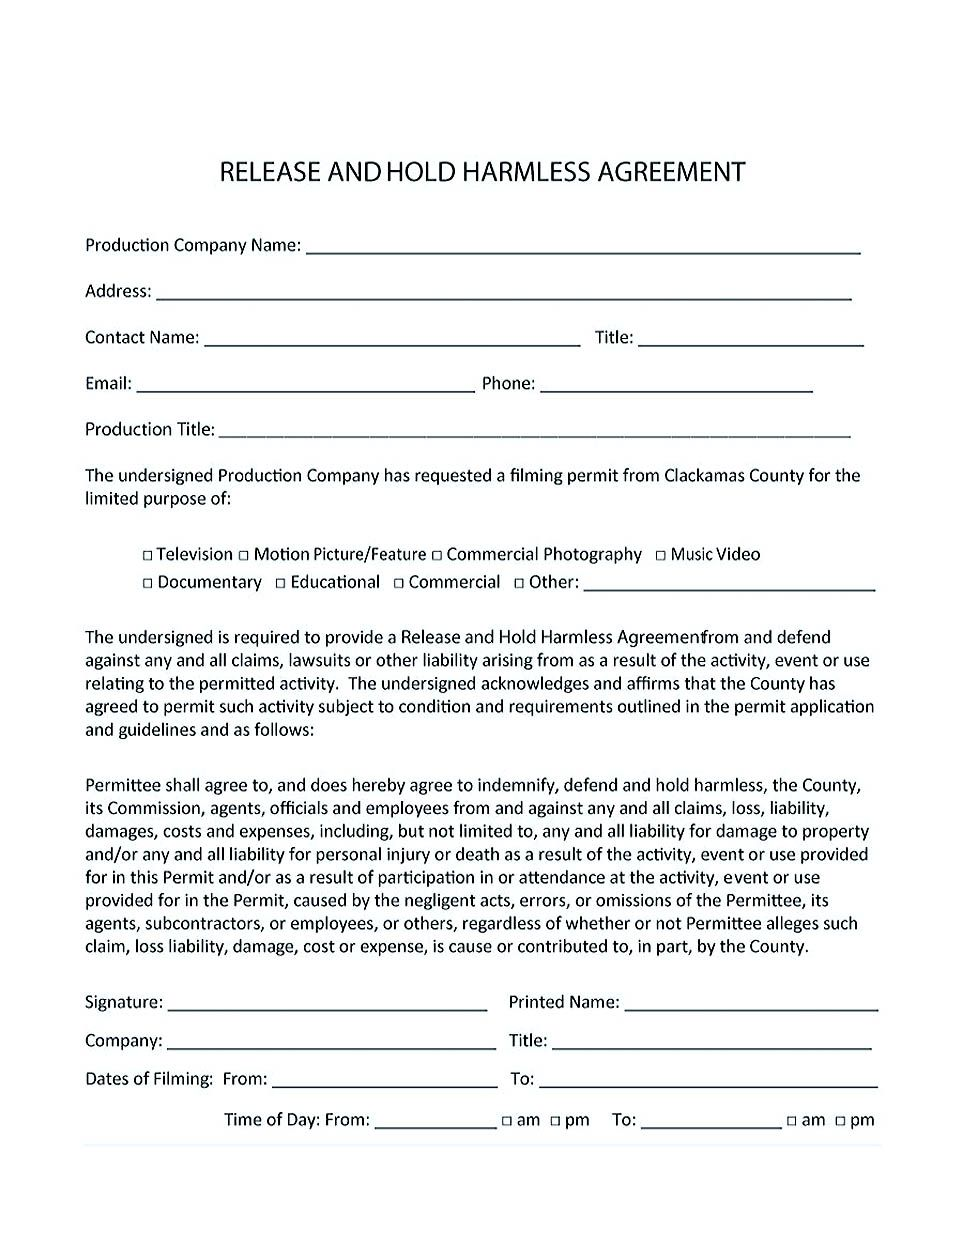 Hold Harmless Agreement Construction , Making Hold Harmless Agreement  Template For Different Purposes , Hold Harmless